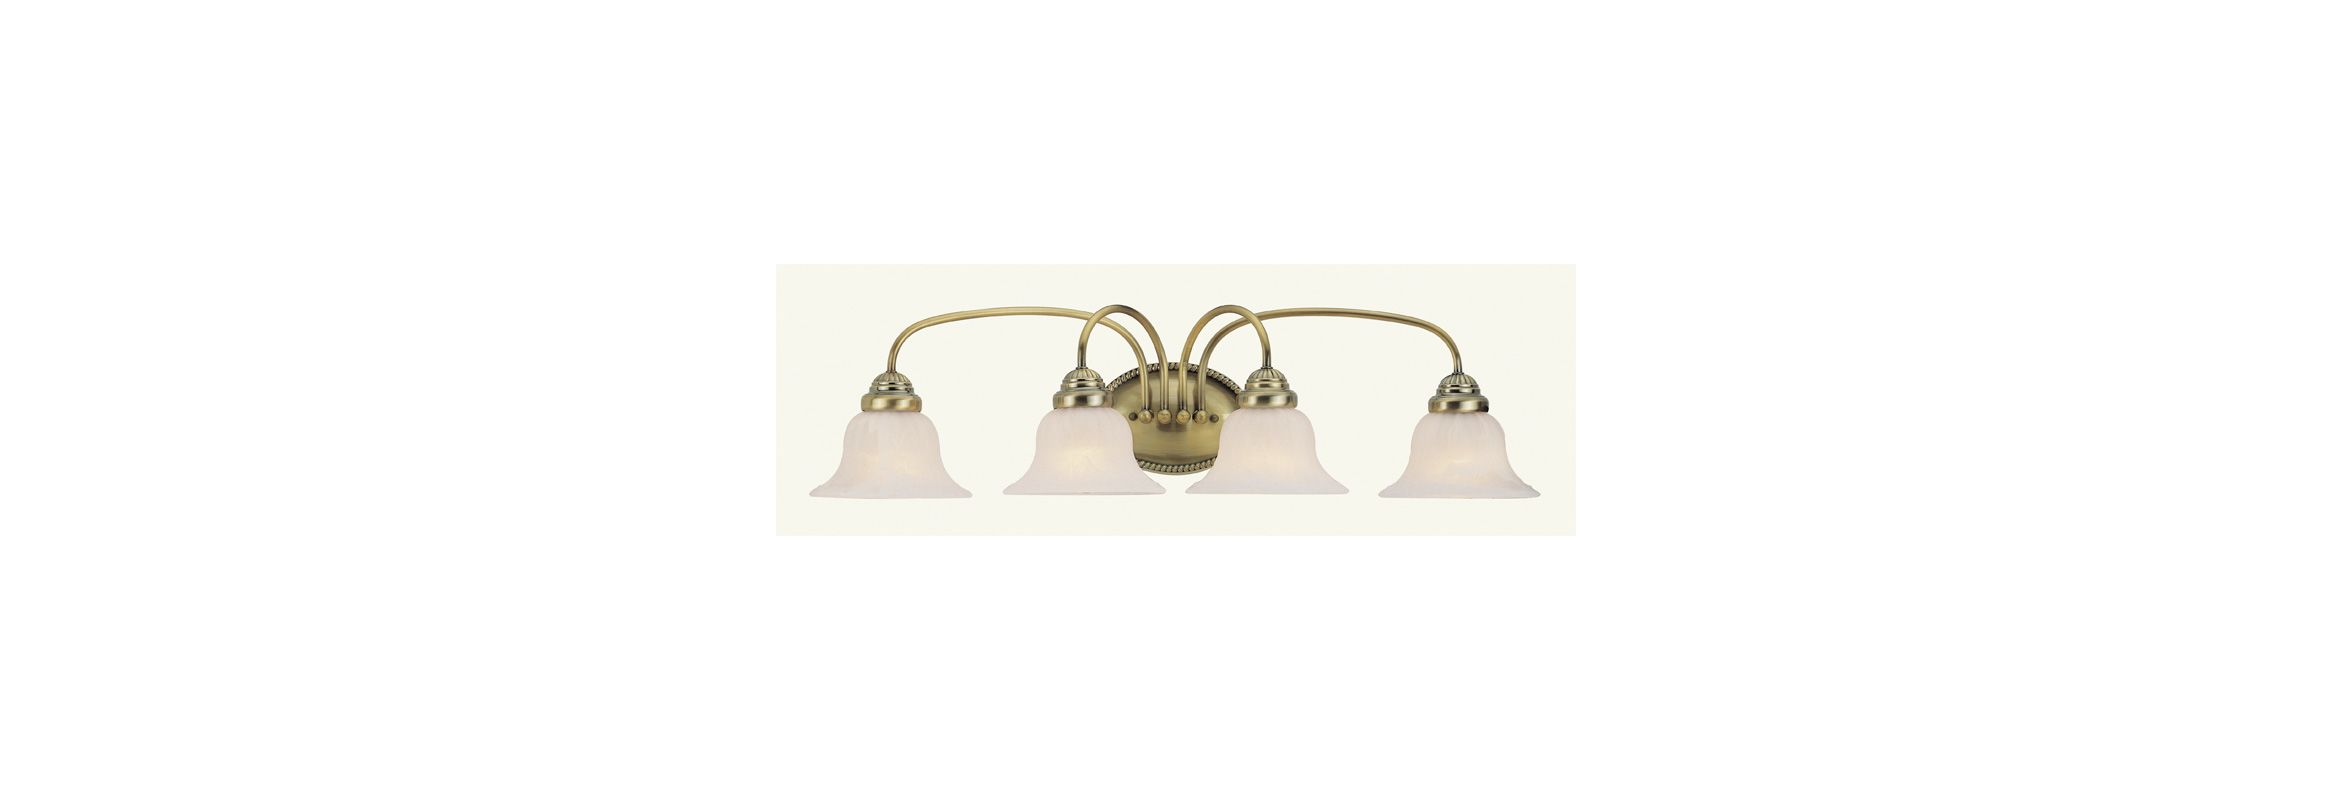 Livex Lighting 1534 Edgemont Bathroom Vanity Bar with 4 Lights Antique